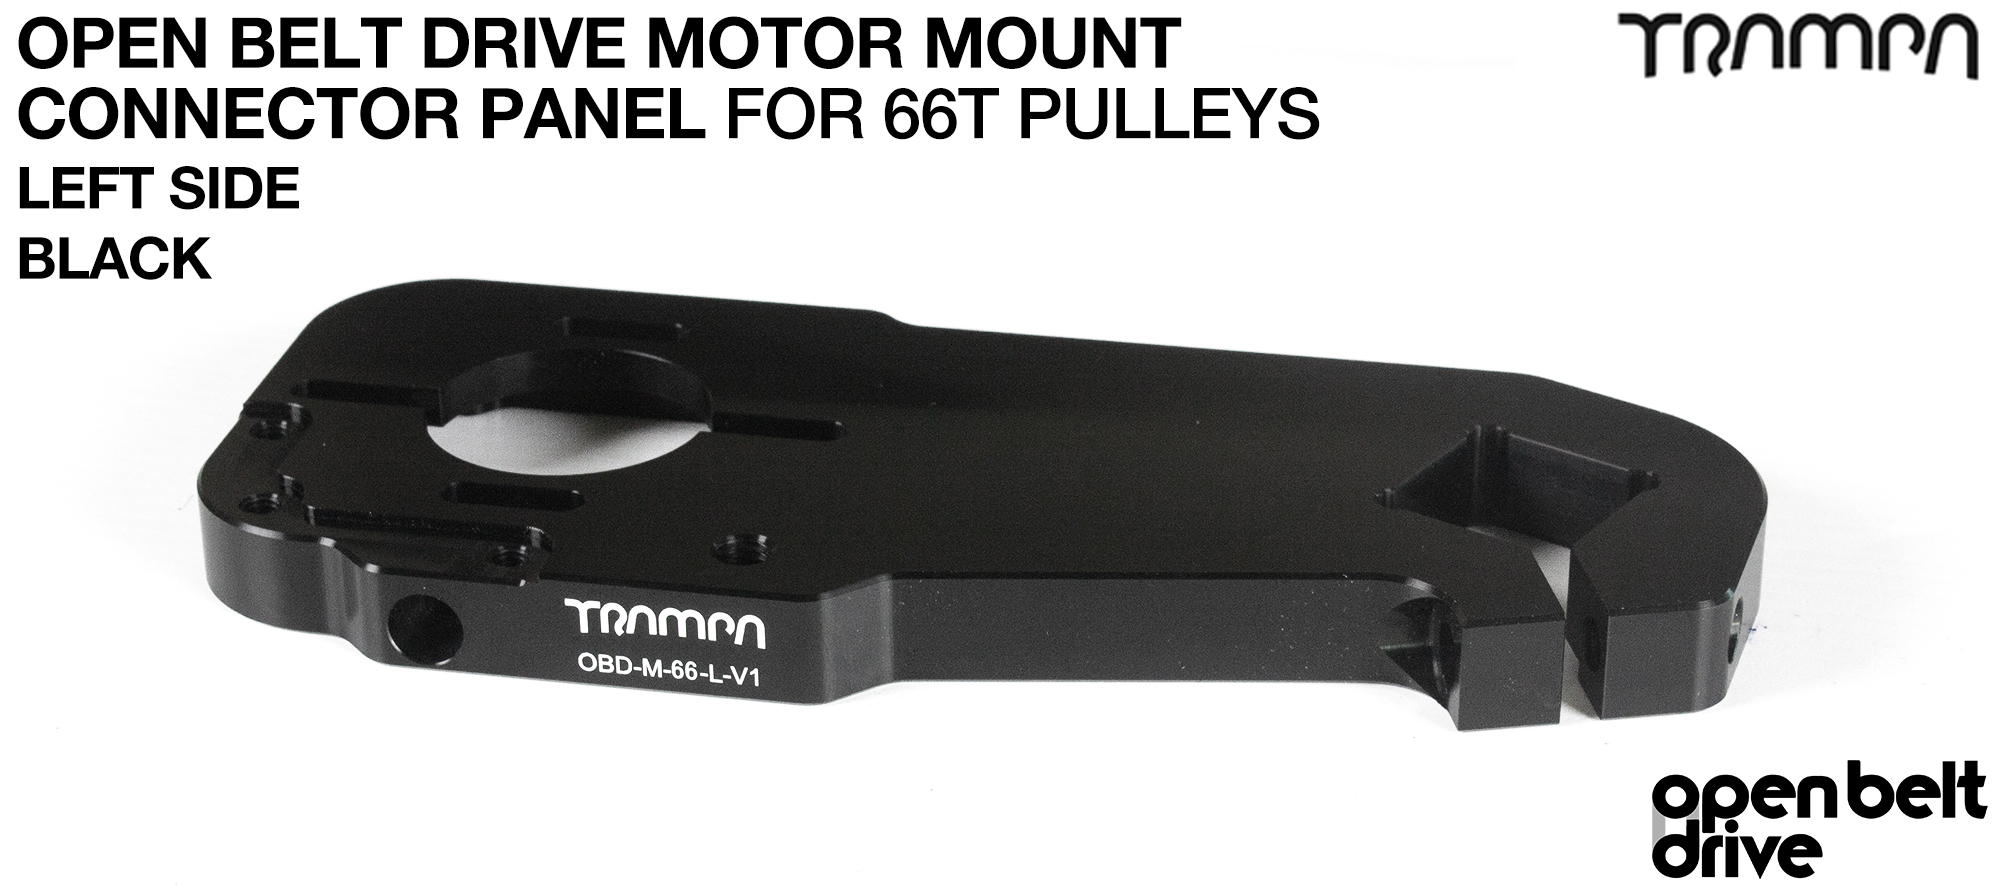 OBD Open Belt Drive Motor Mount Connector Panel for 66 tooth Pulleys - REGULAR - BLACK